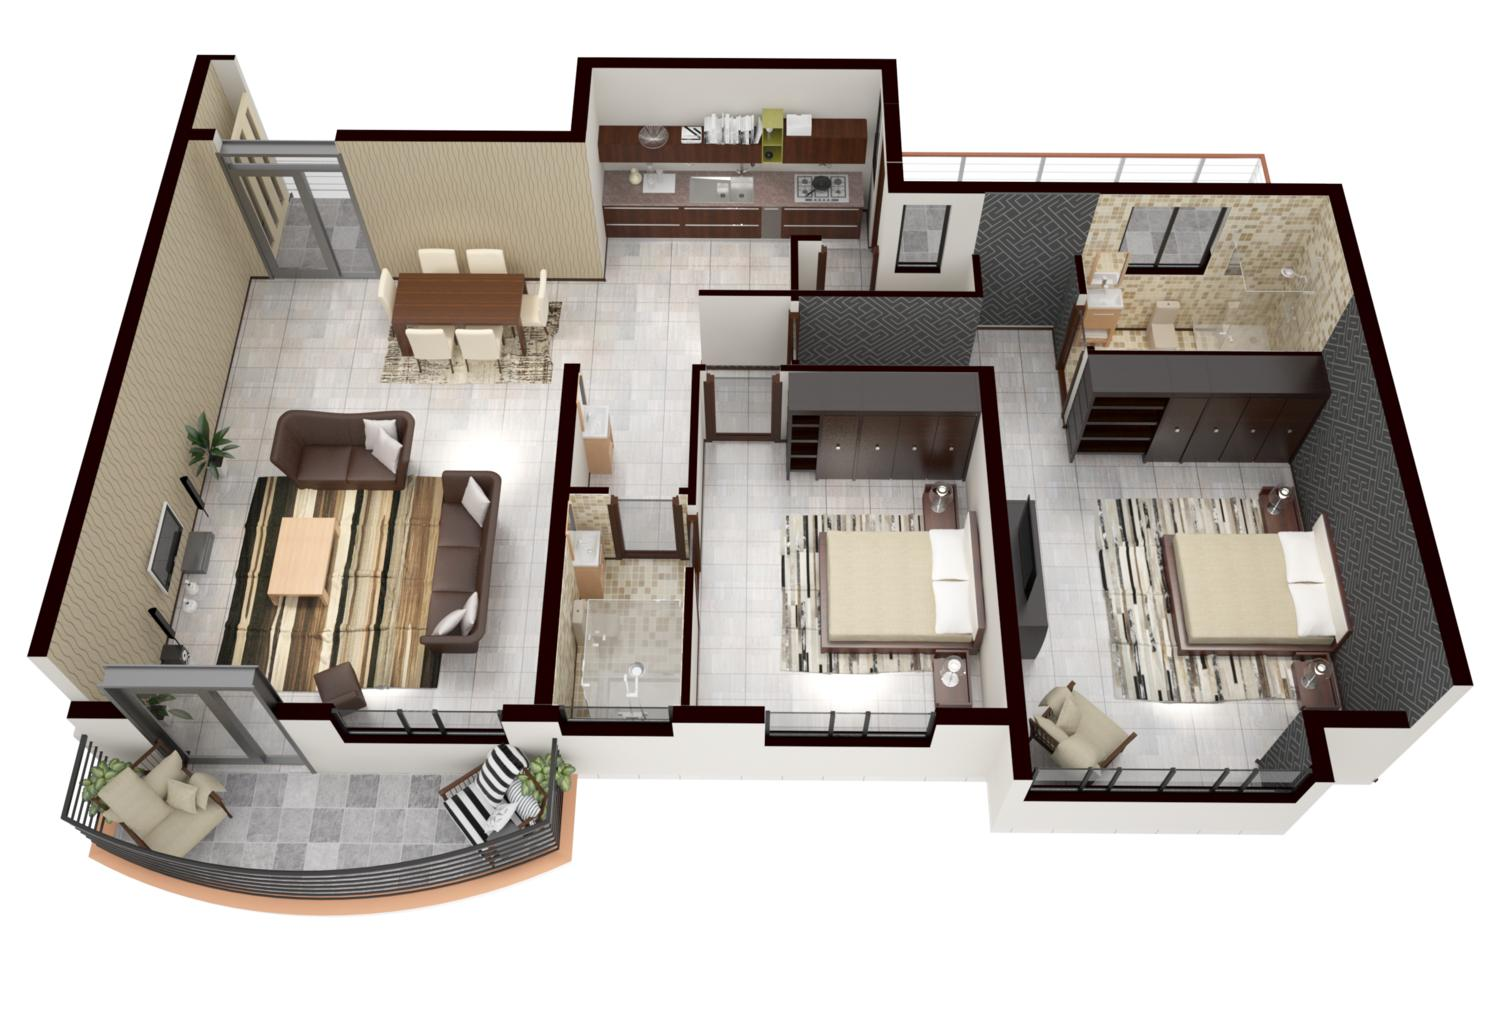 3D Floor Plan Rendering by gesora - 110224